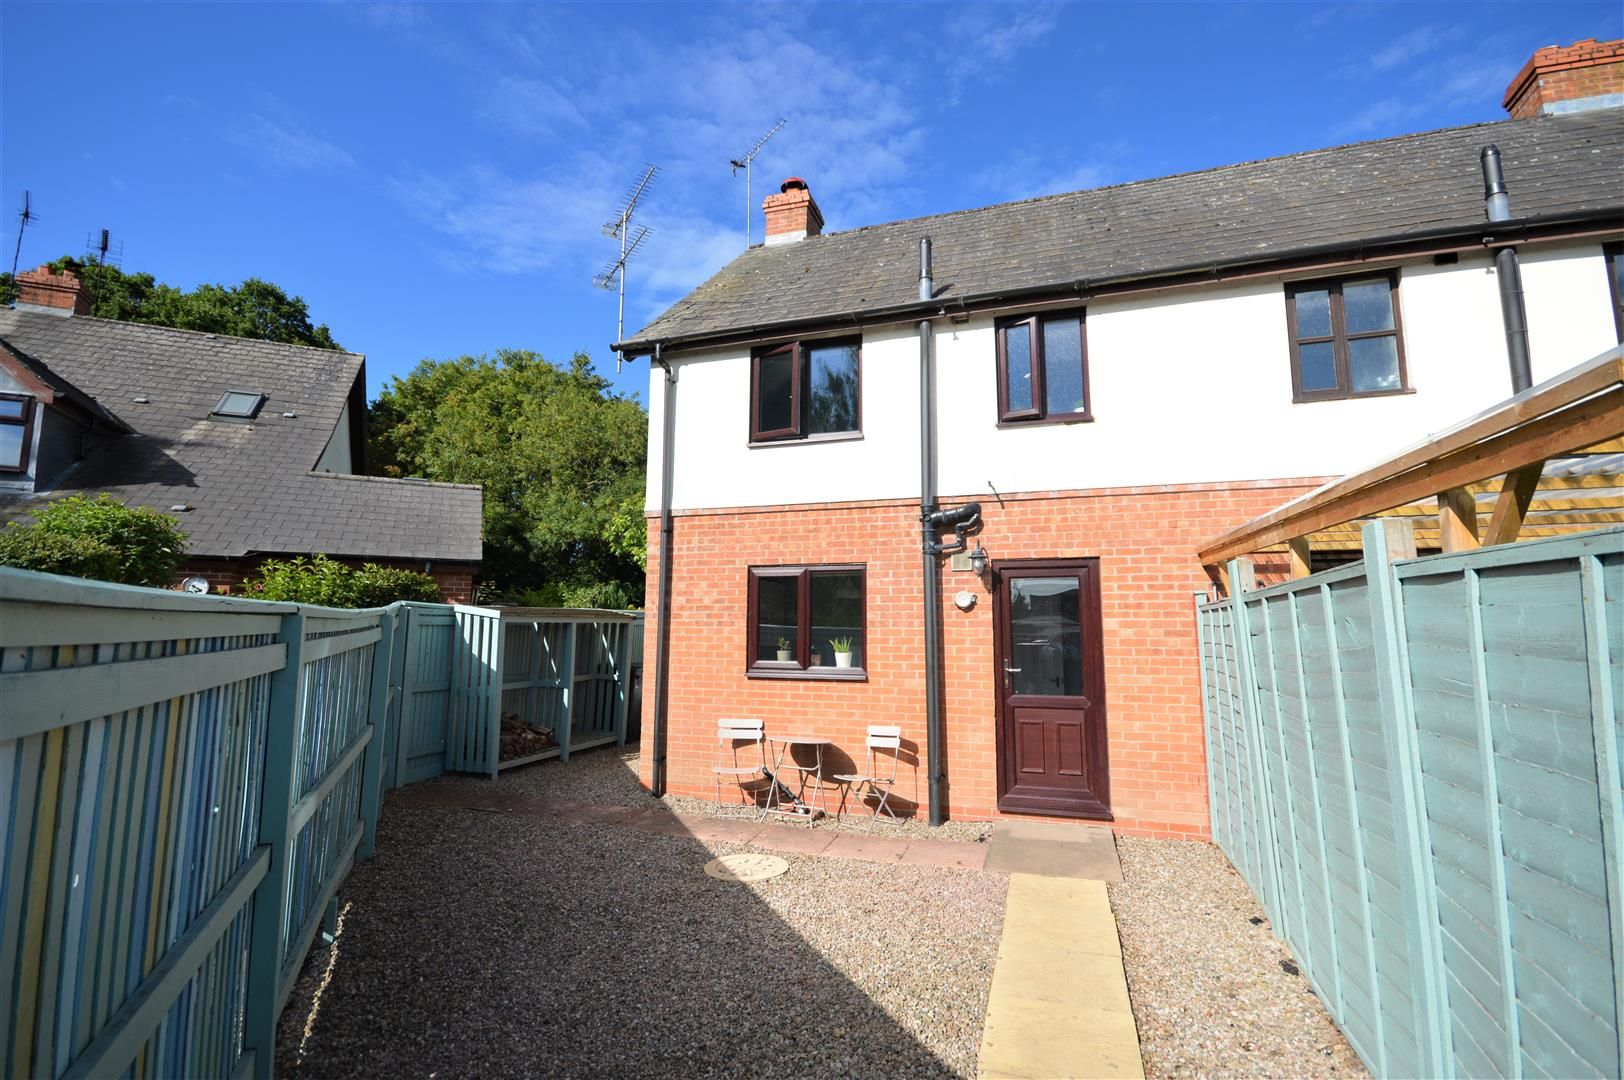 2 bed end-of-terrace for sale in Leominster 6